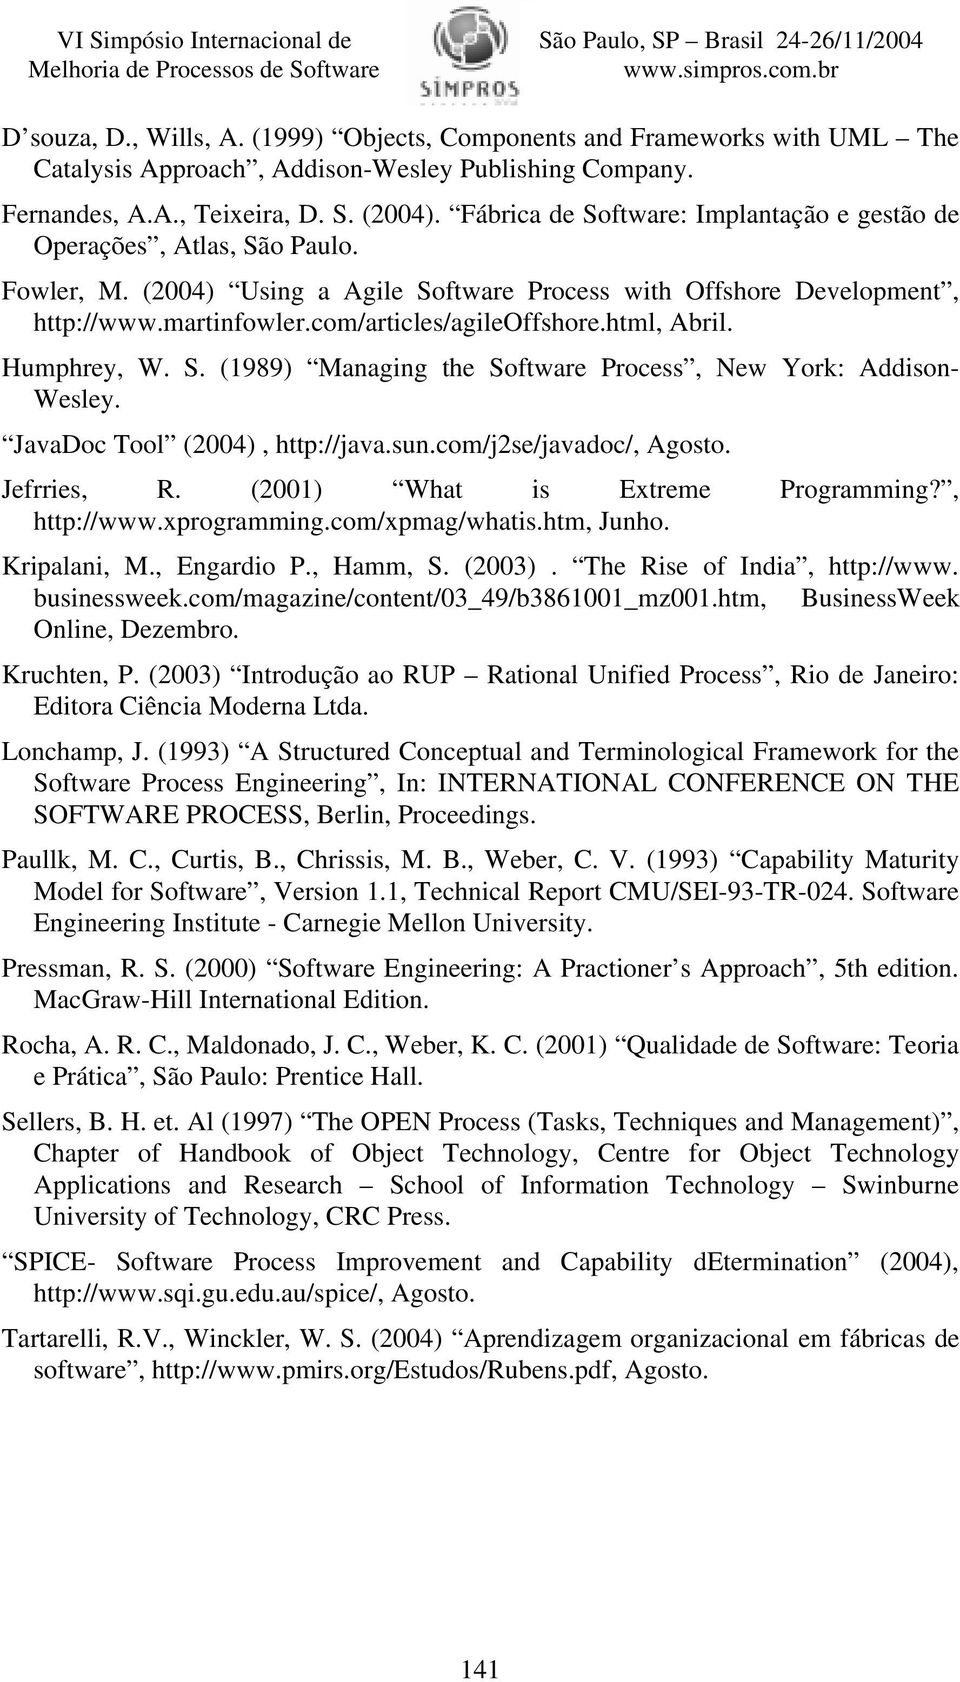 com/articles/agileoffshore.html, Abril. Humphrey, W. S. (1989) Managing the Software Process, New York: Addison- Wesley. JavaDoc Tool (2004), http://java.sun.com/j2se/javadoc/, Agosto. Jefrries, R.